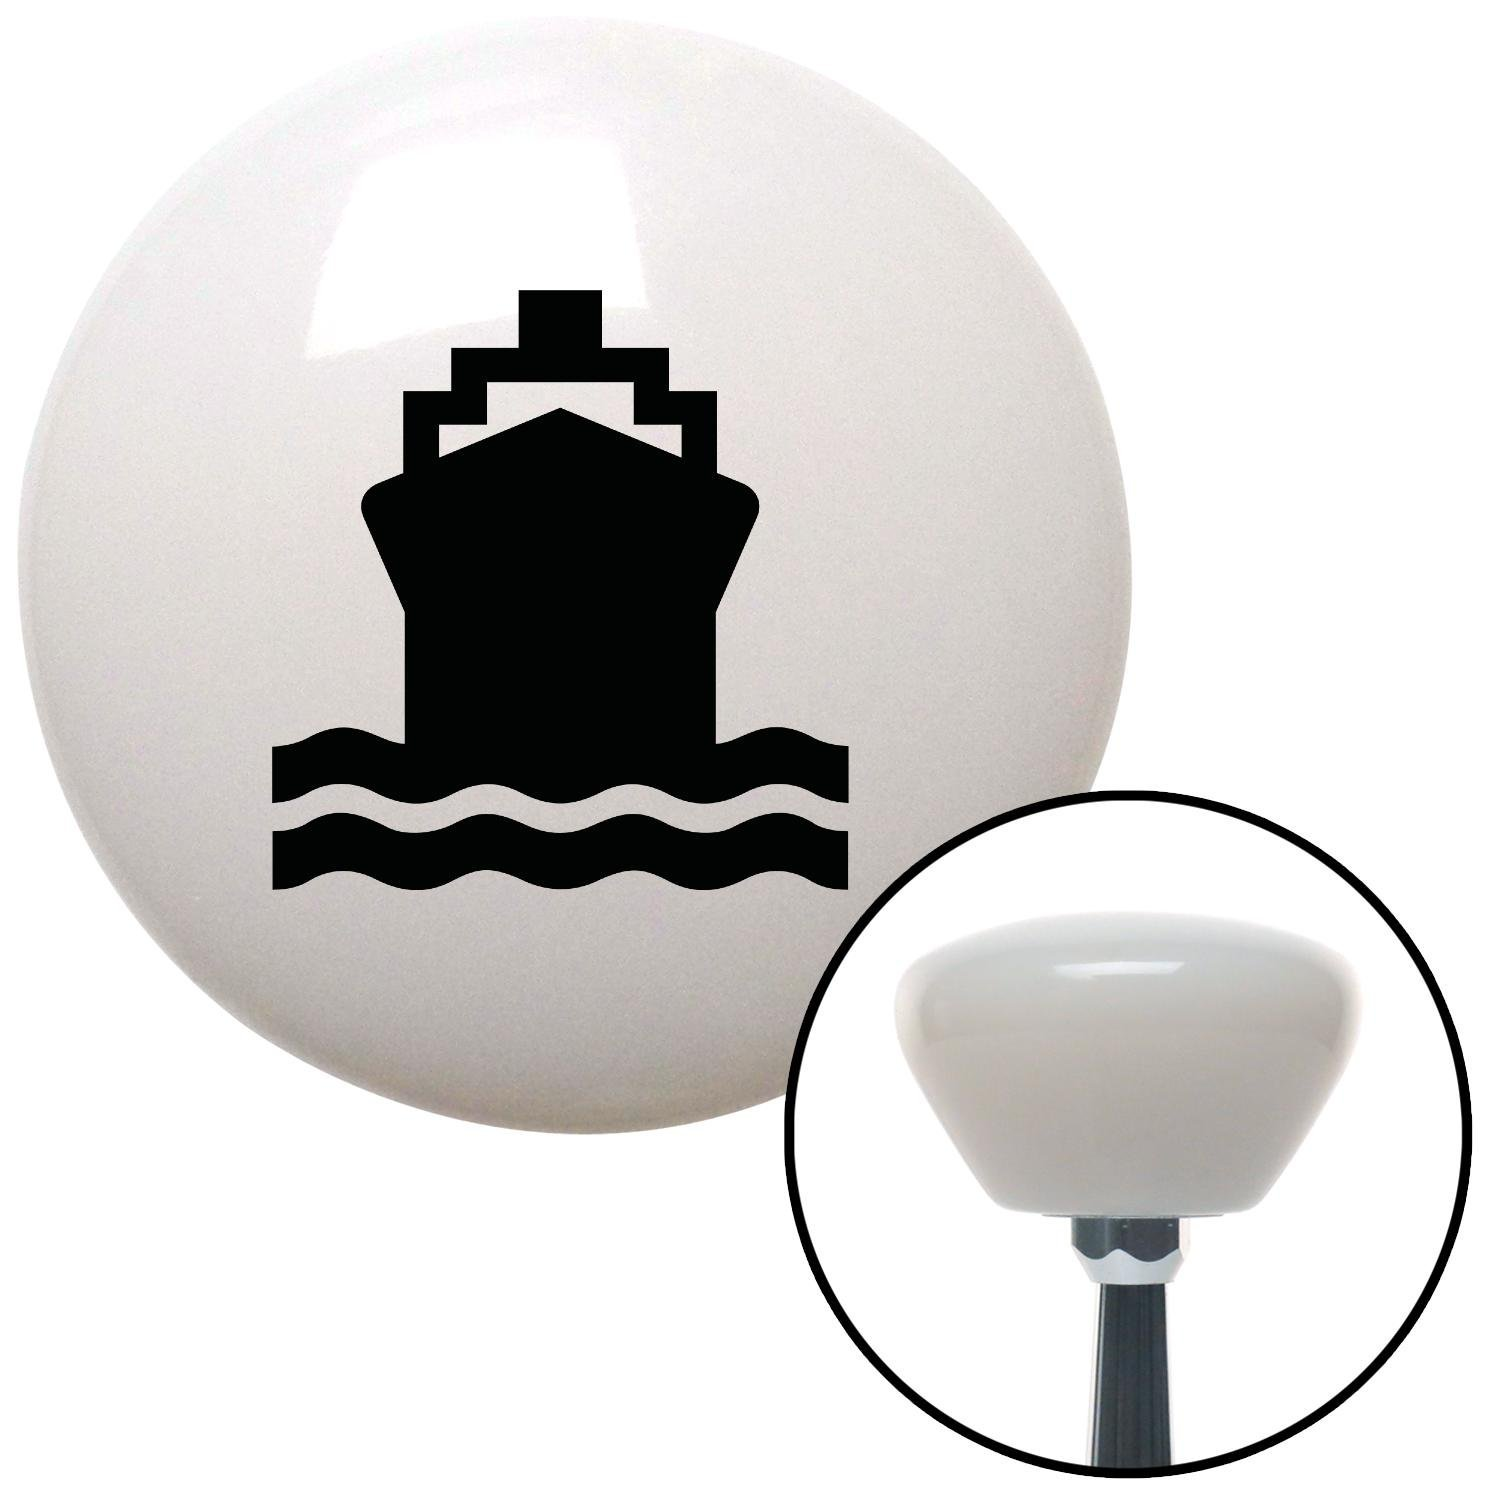 American Shifter 152761 White Retro Shift Knob with M16 x 1.5 Insert Black Cruiseship